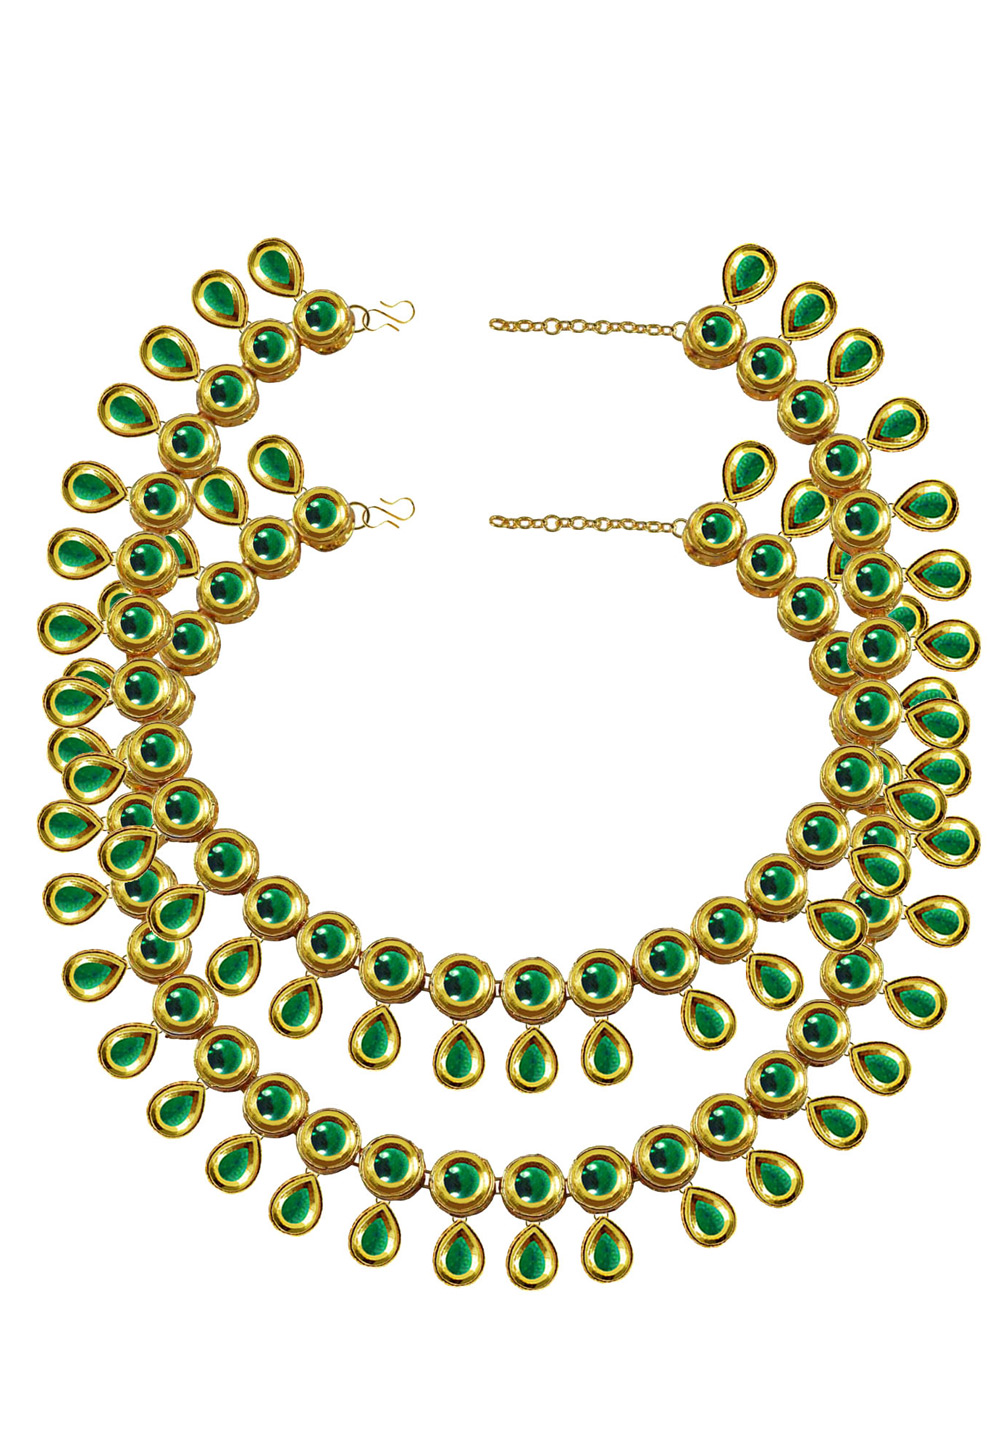 Green Brass Gold Plated Anklets 171401